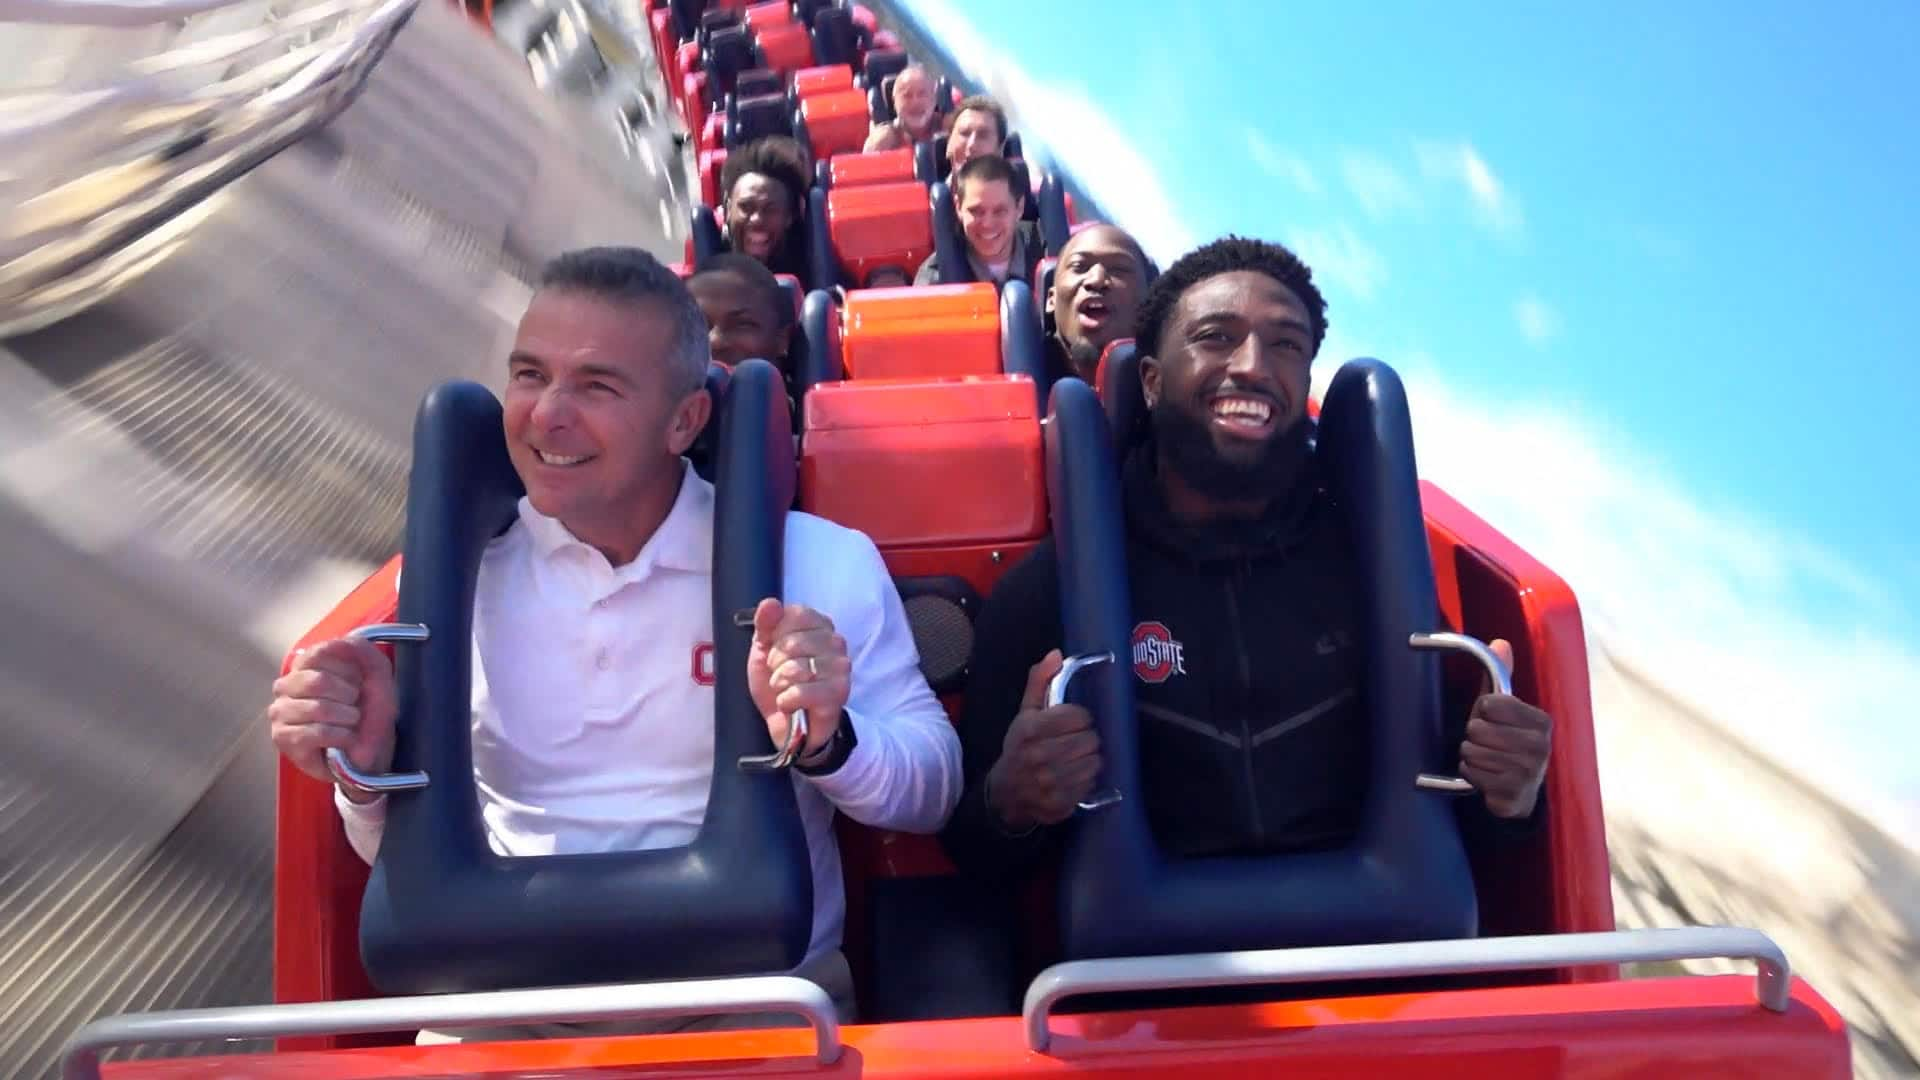 Washington Huskies ride the Incredicoaster at Disney California Adventure park